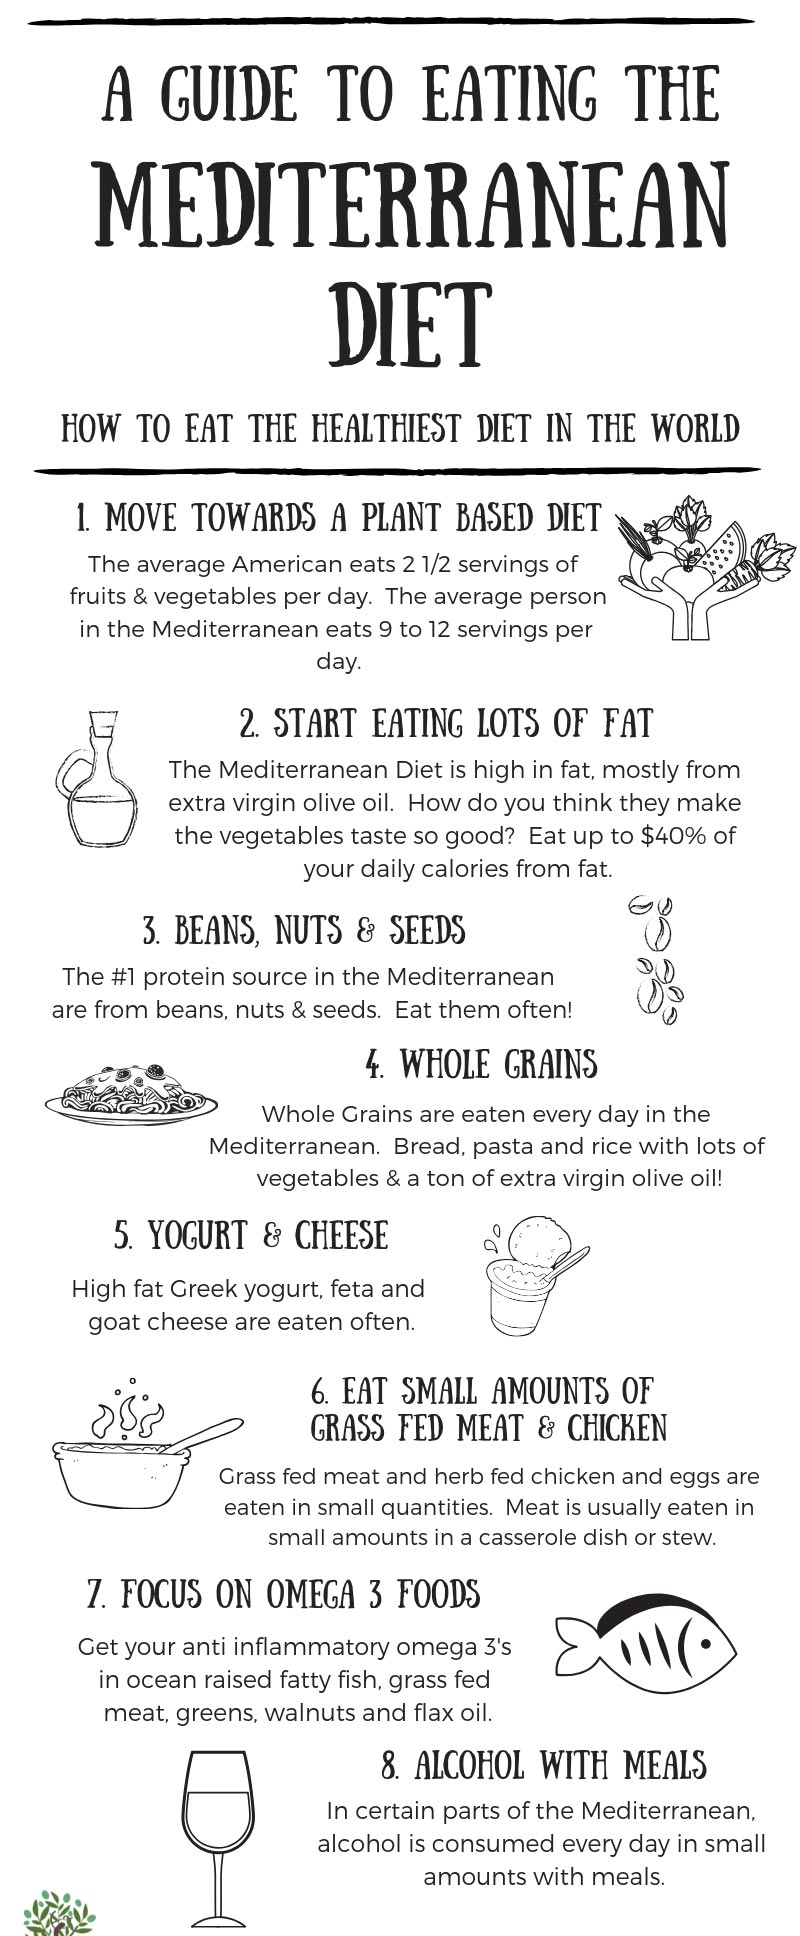 Guide to Eating Mediterranean Diet